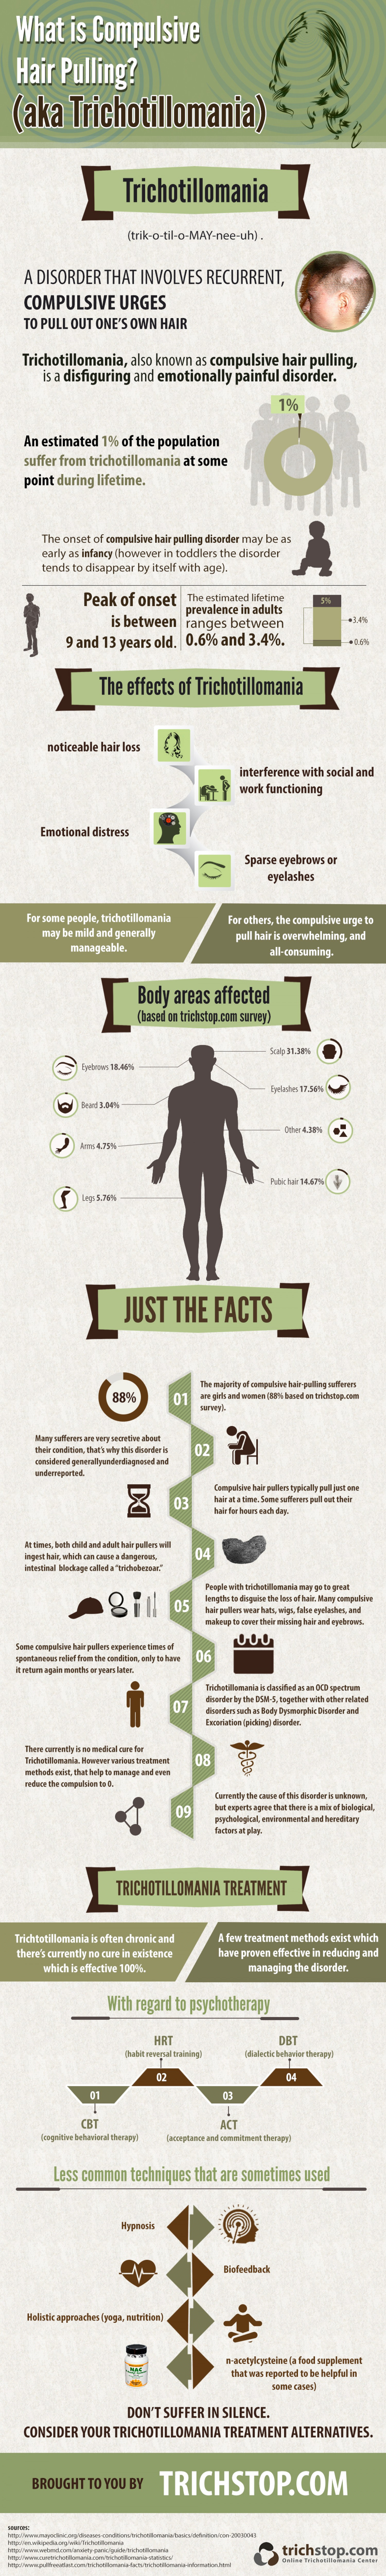 What Is Compulsive Hair Pulling Aka Trichotillomania Infographic